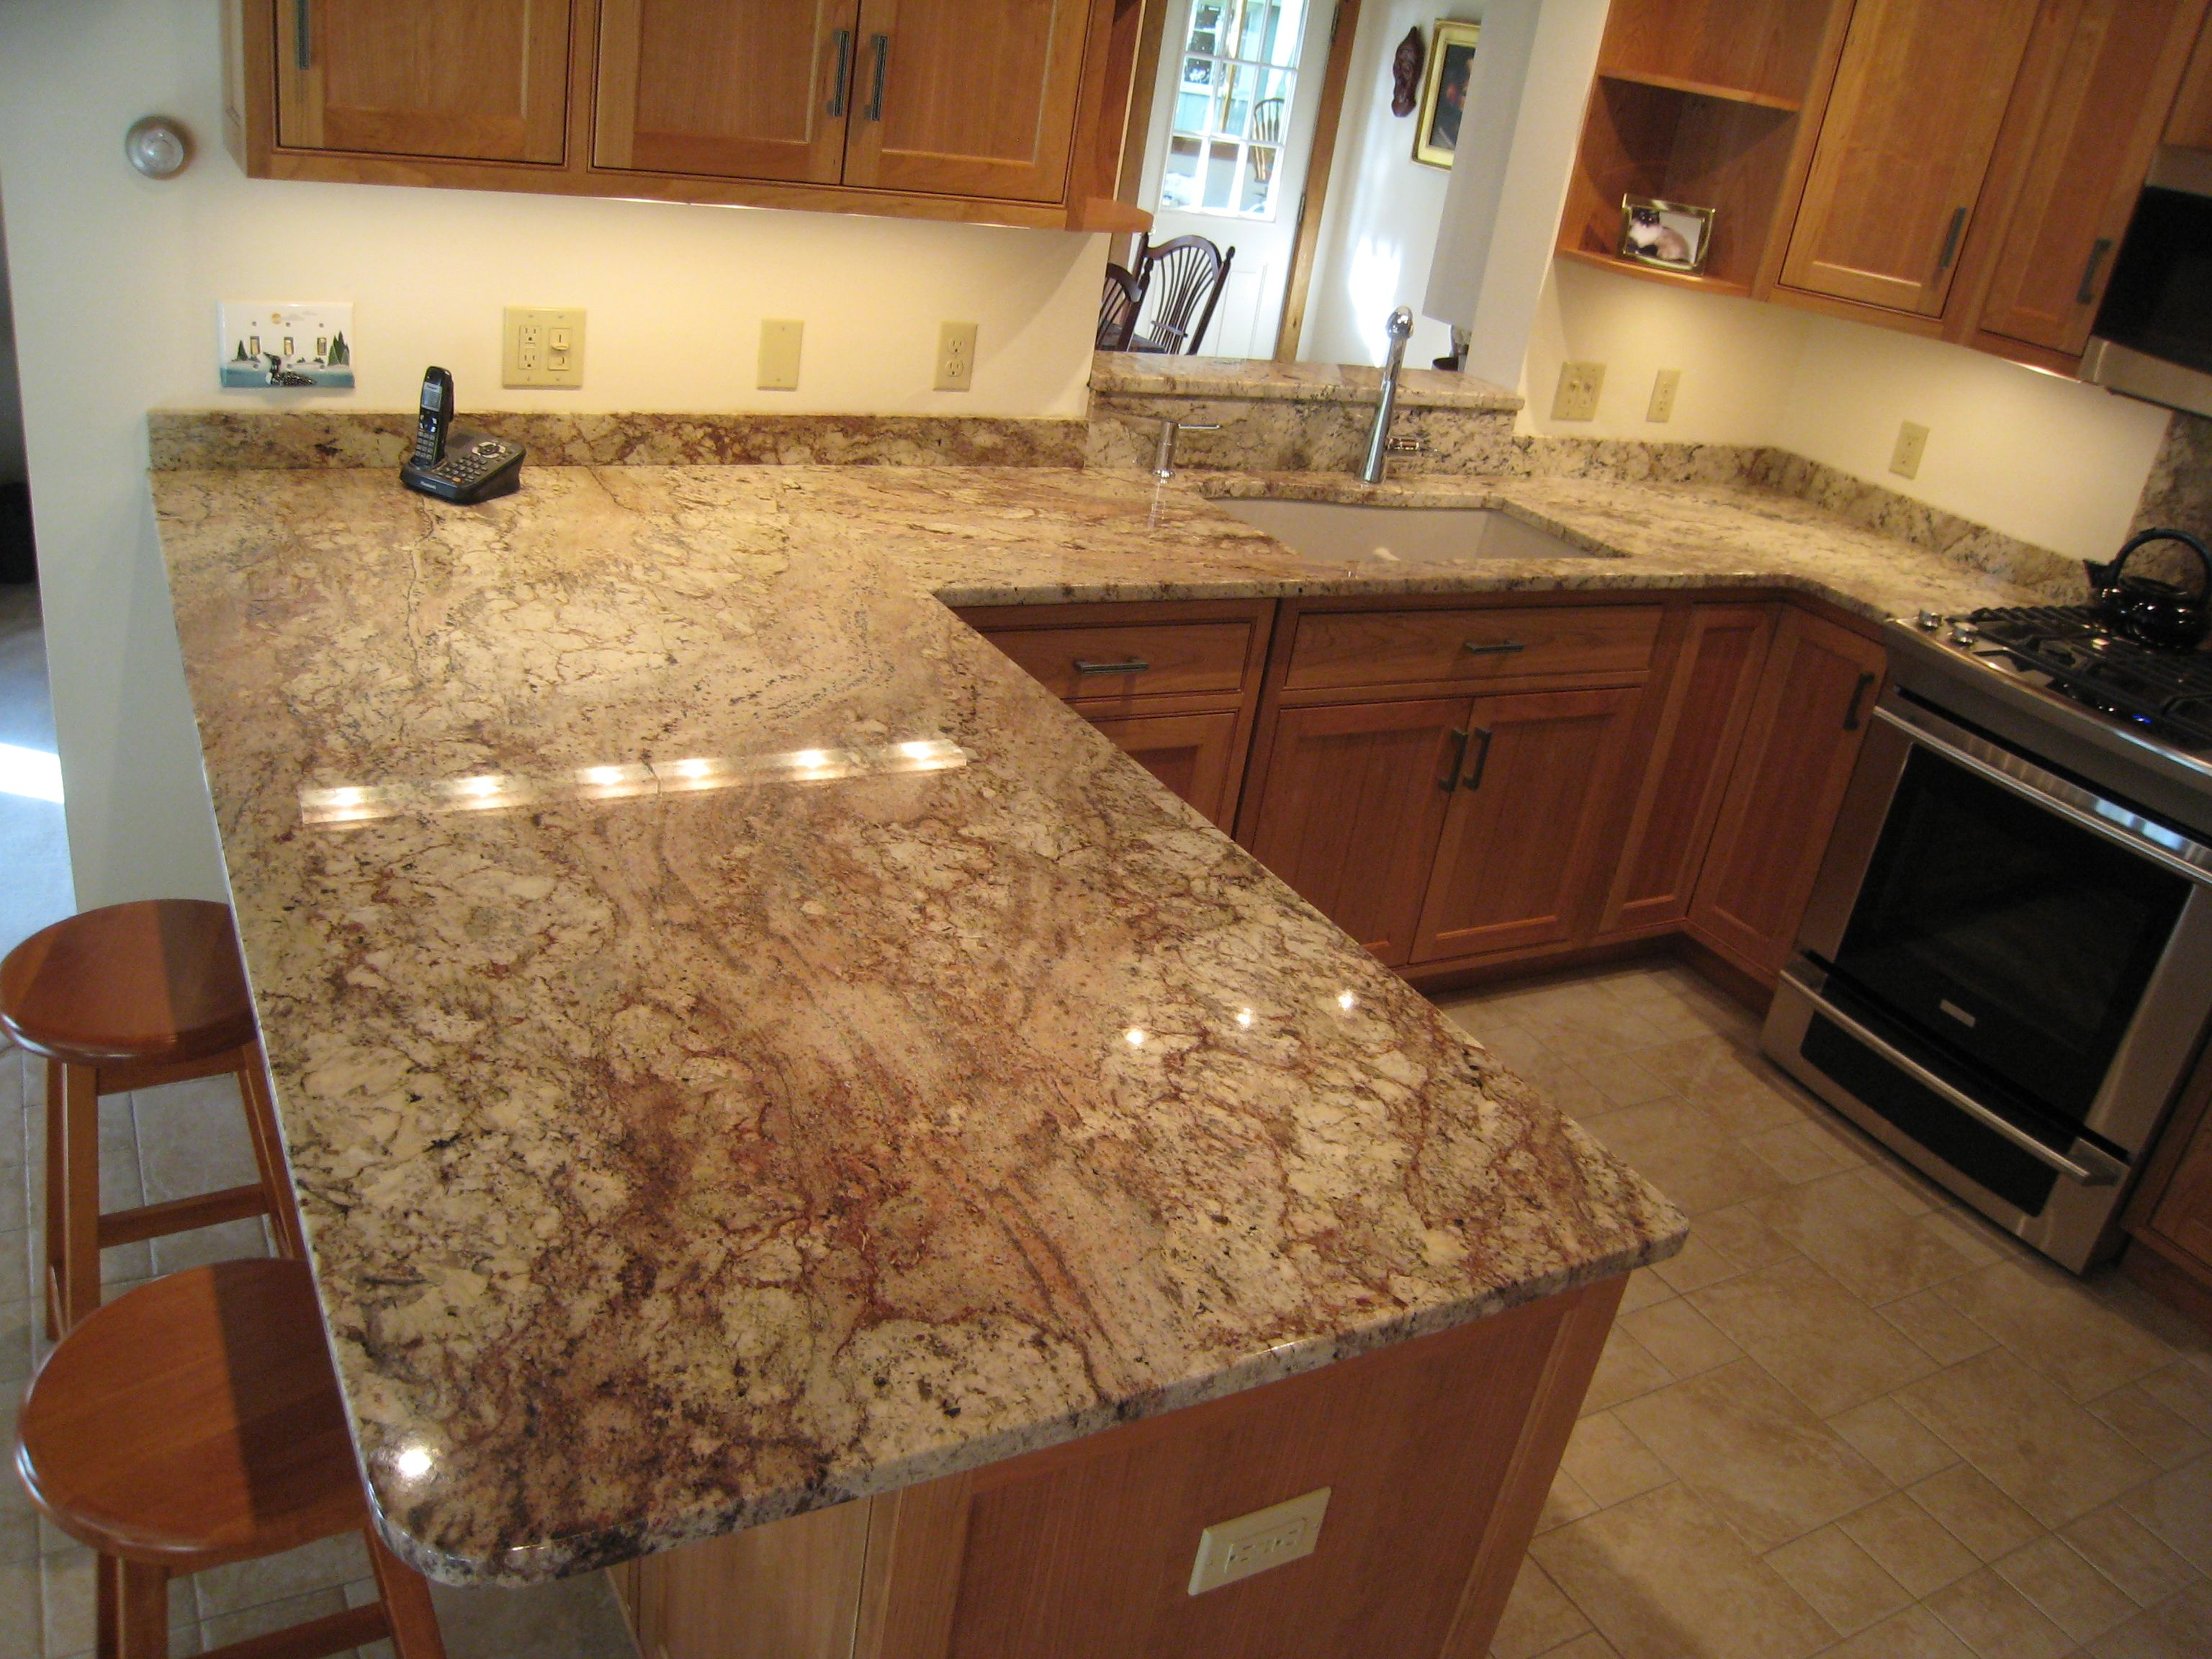 Crema Bordeaux Granite Kitchen Like This Color Granite Maybe With Wood Floors And White Cabinets